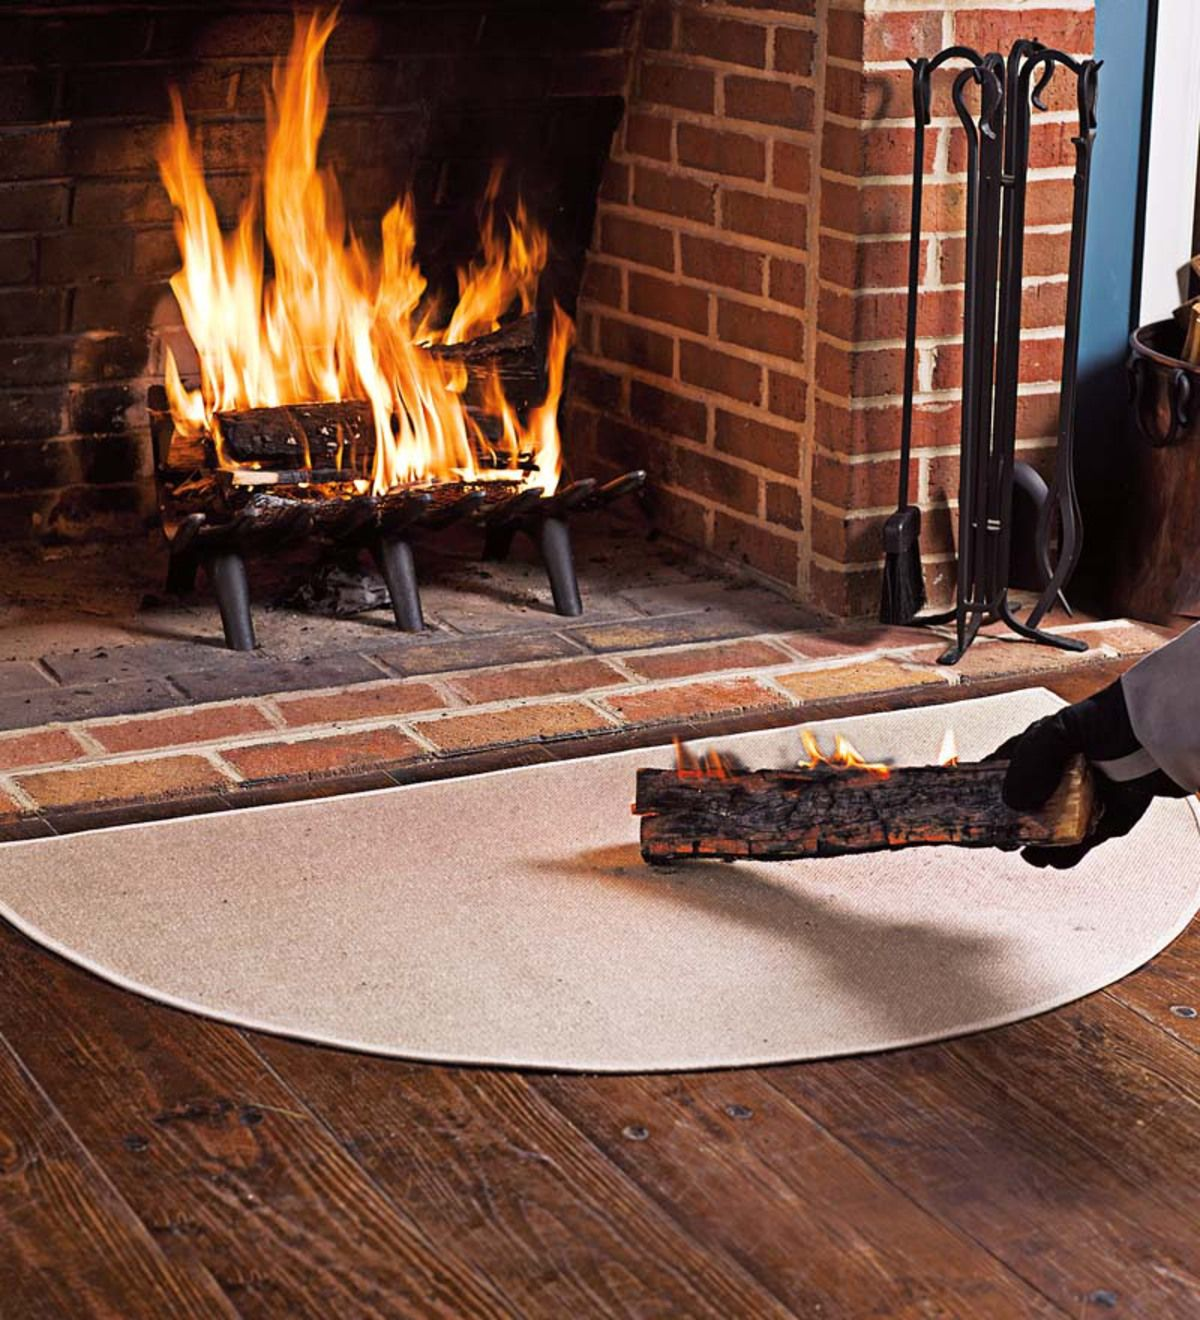 Flame Resistant Fiberglass Half Round Hearth Rug Fireplace Tools Accessories Fireplace Screens Fireplace Hearth Plowhearth Hearth Rug Fireplace Rugs Hearth